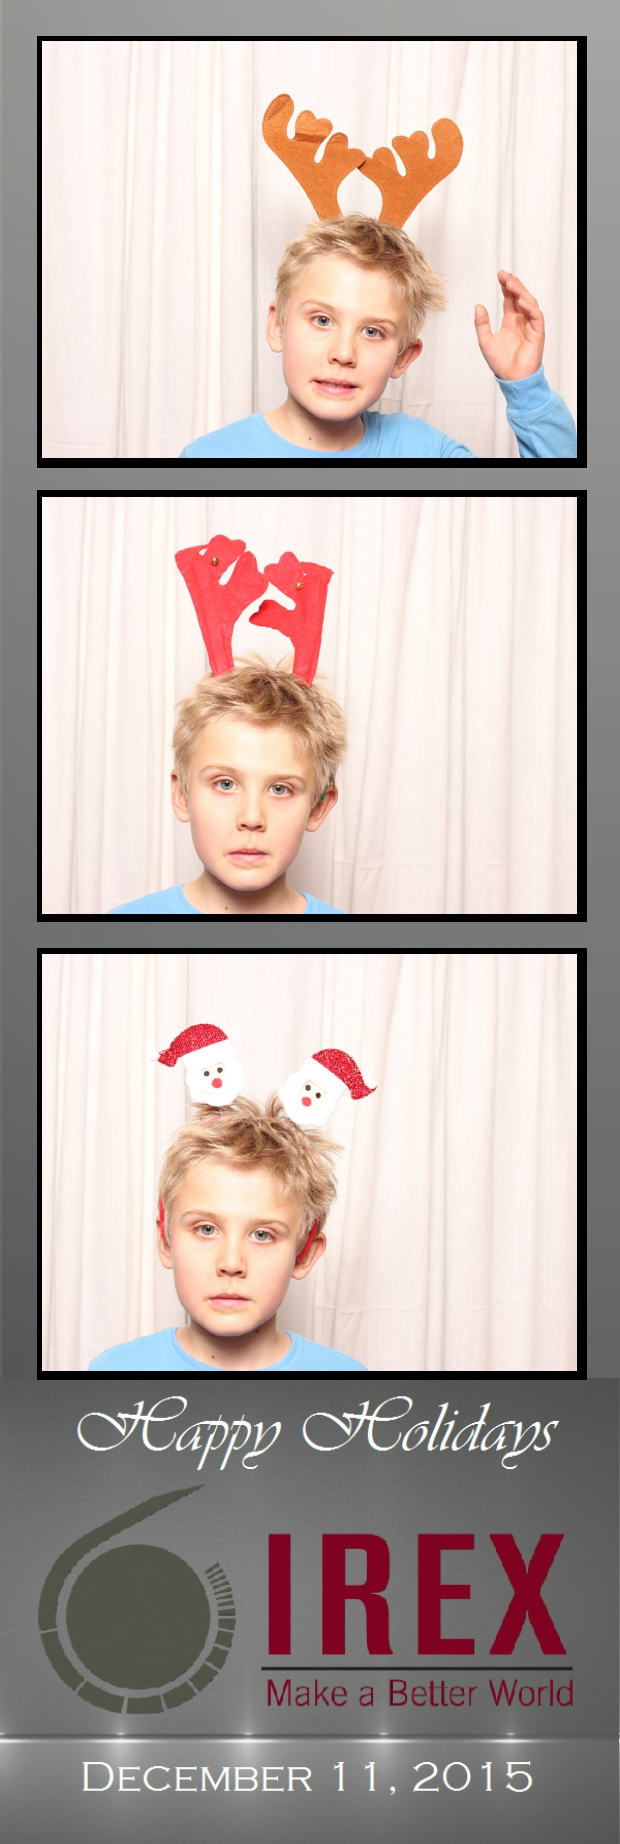 Guest House Events Photo Booth Strips IREX (83).jpg